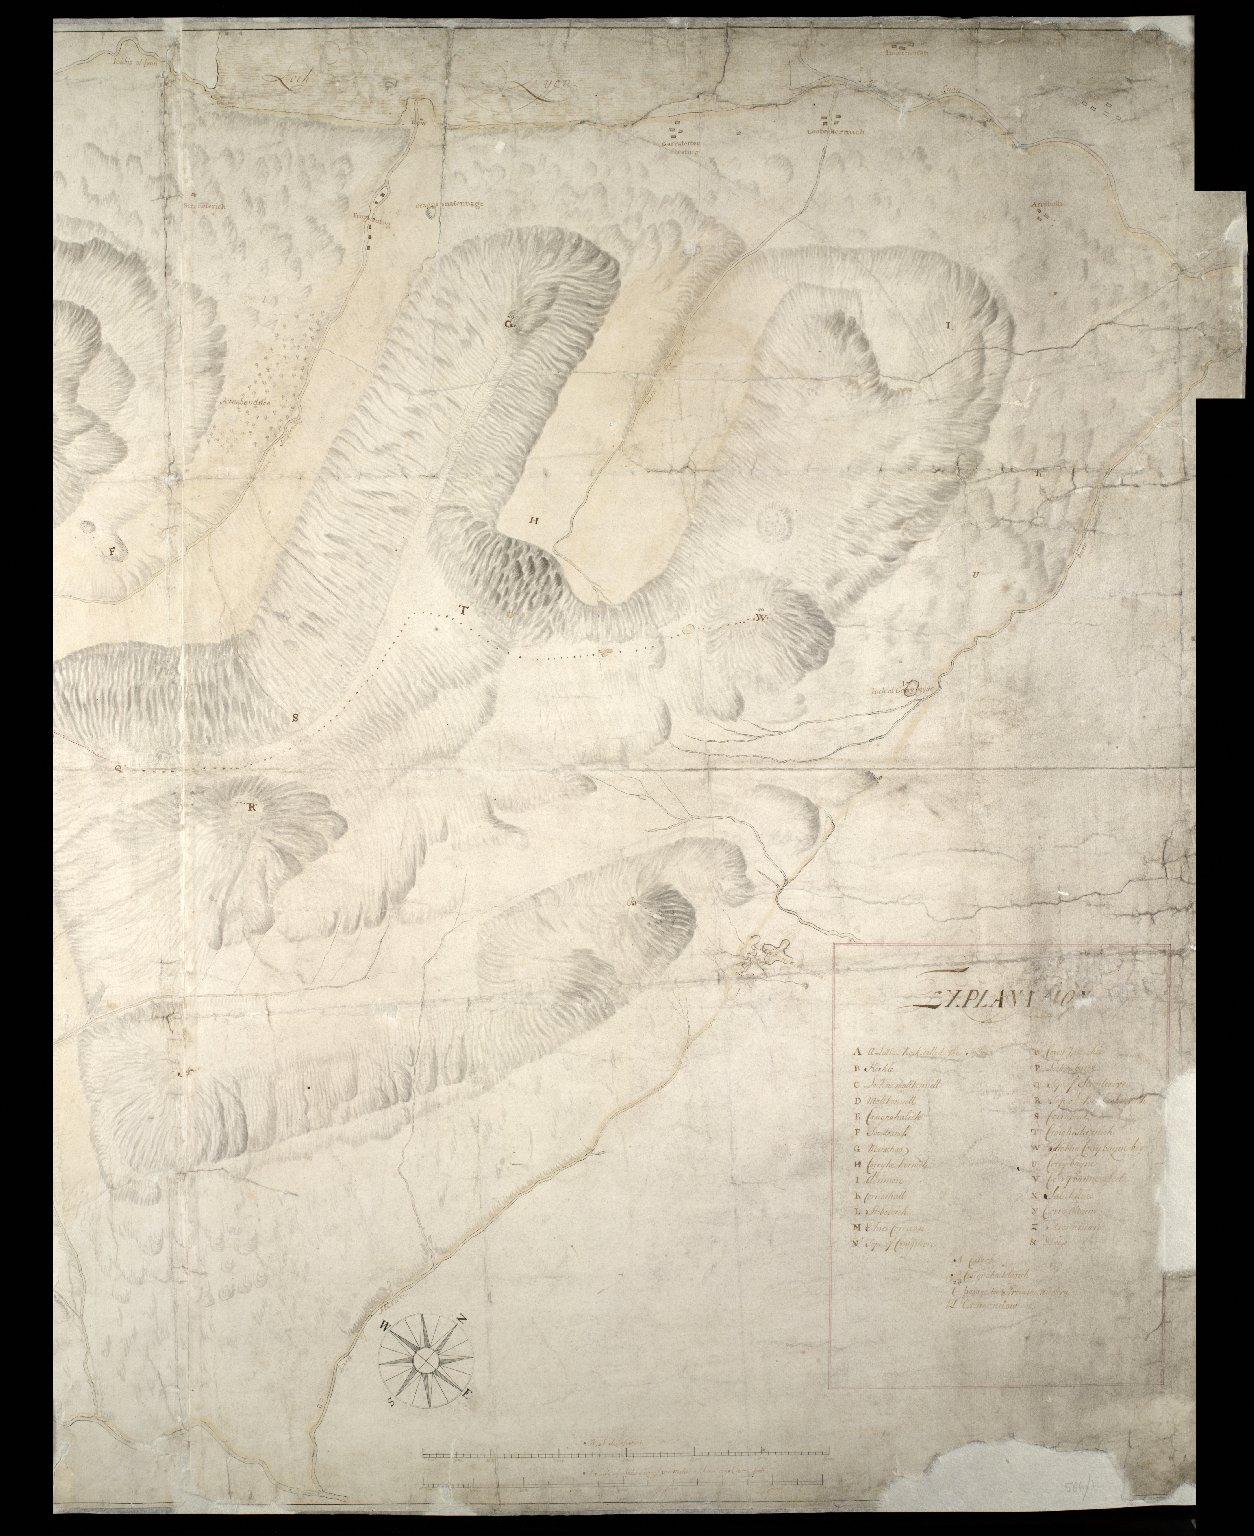 Plan of the Forest of Mamlorn. [1 of 2]